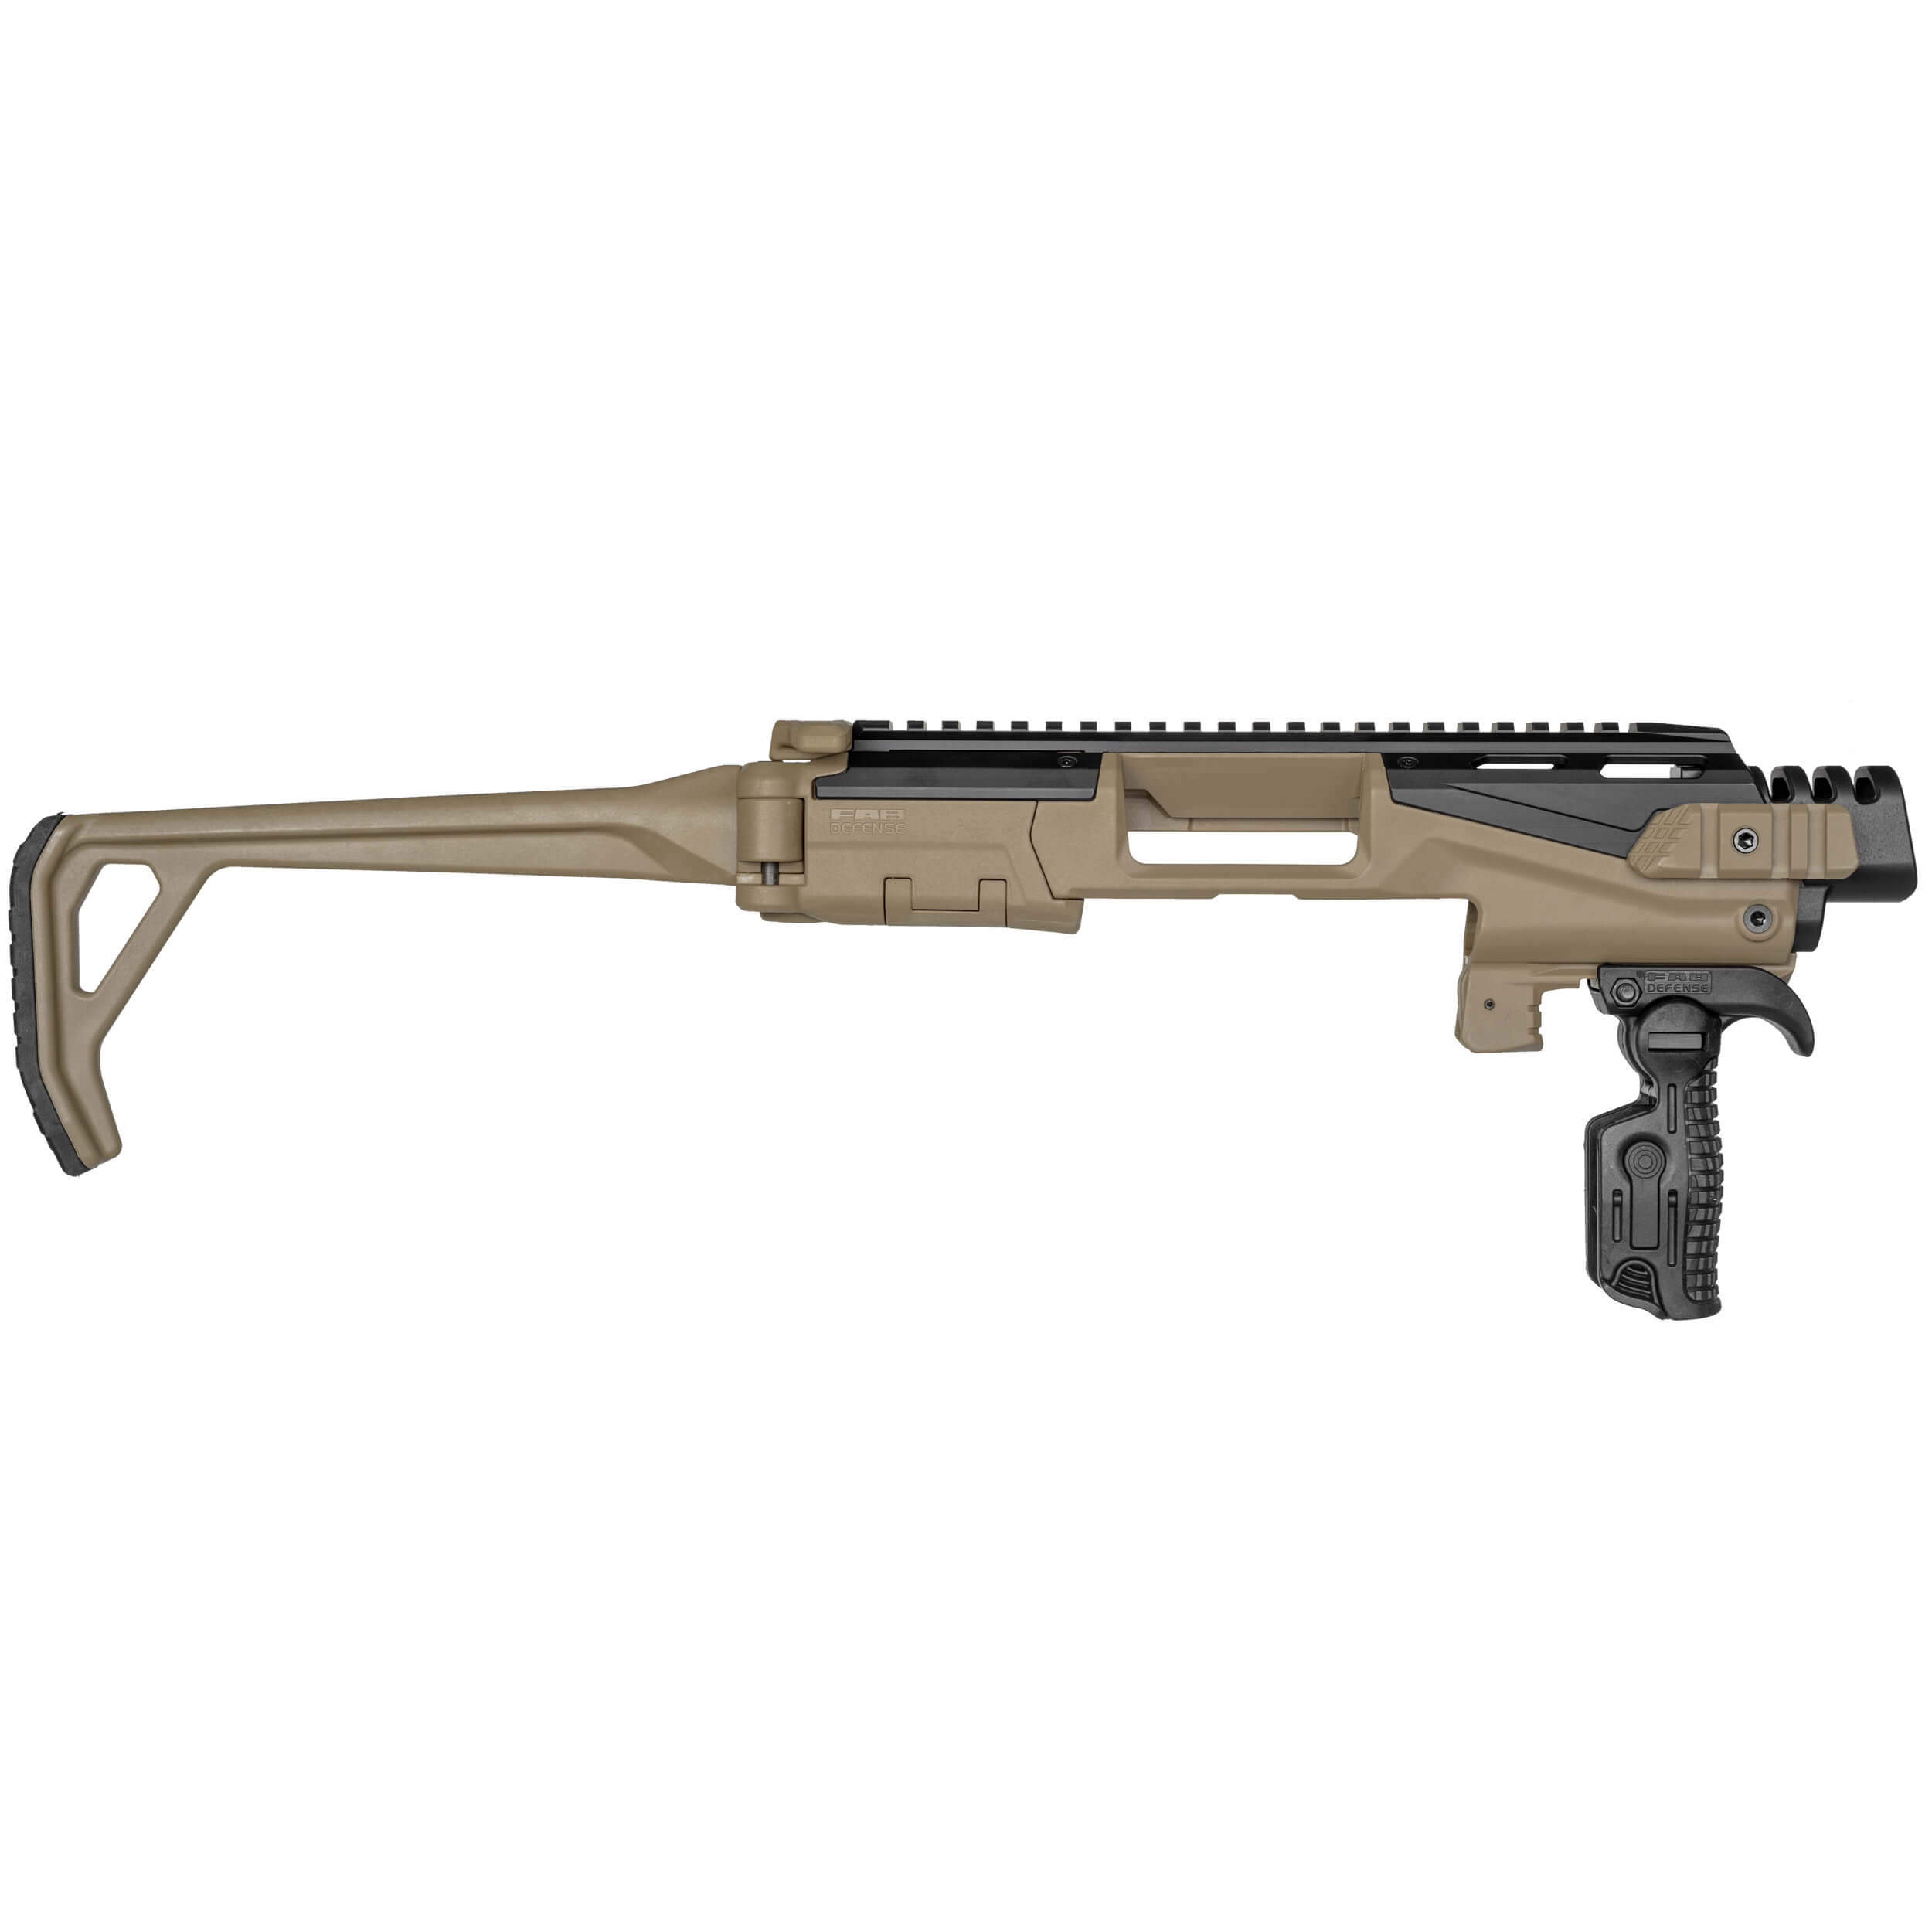 KPOS Scout STANDARD PDW